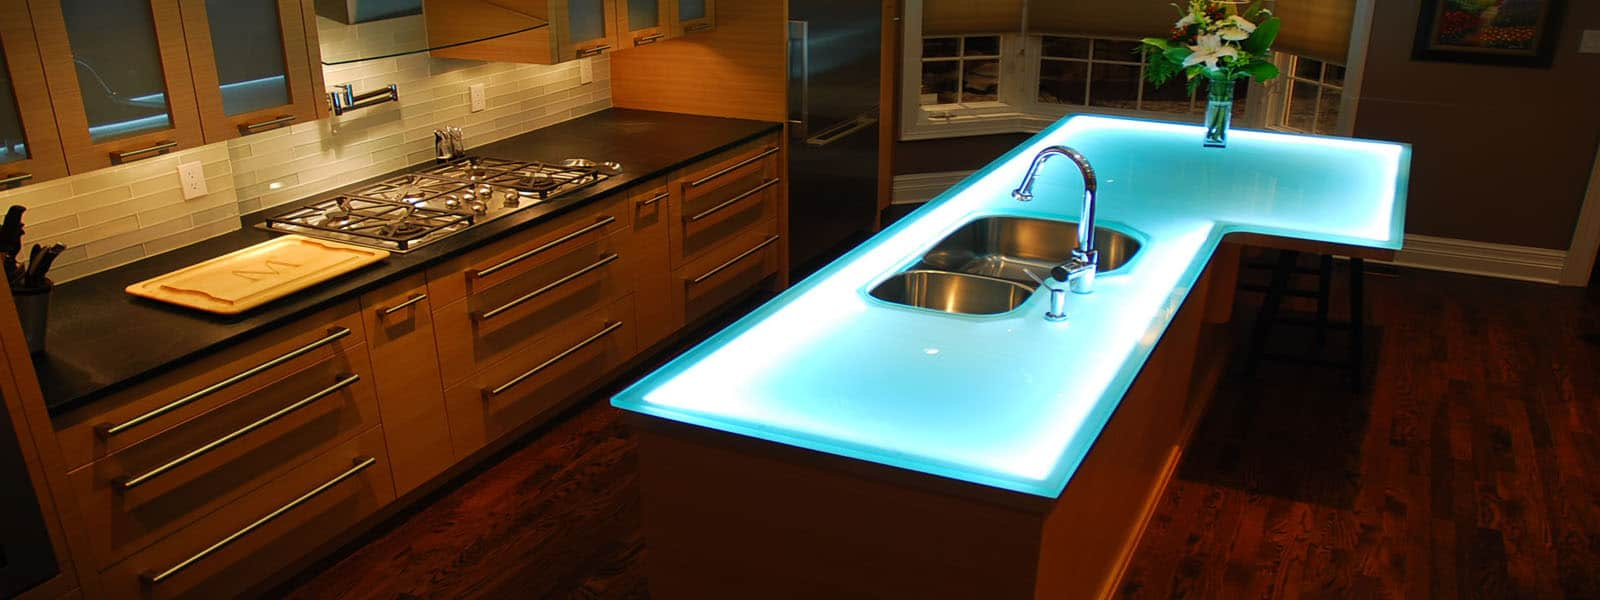 View In Gallery Modern Countertops Unusual Material